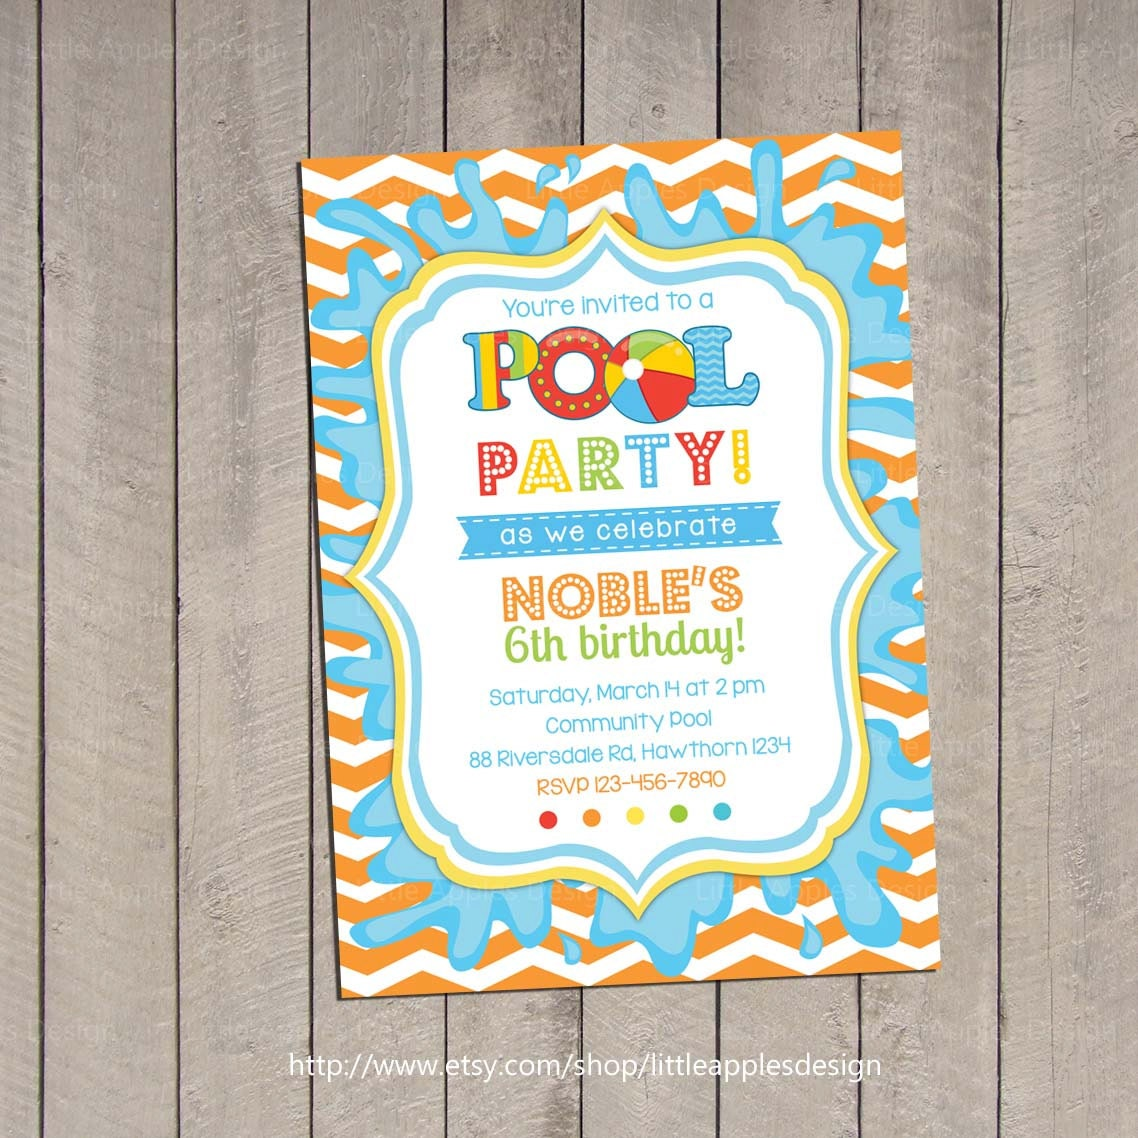 Homemade Invitation Cards as awesome invitation design